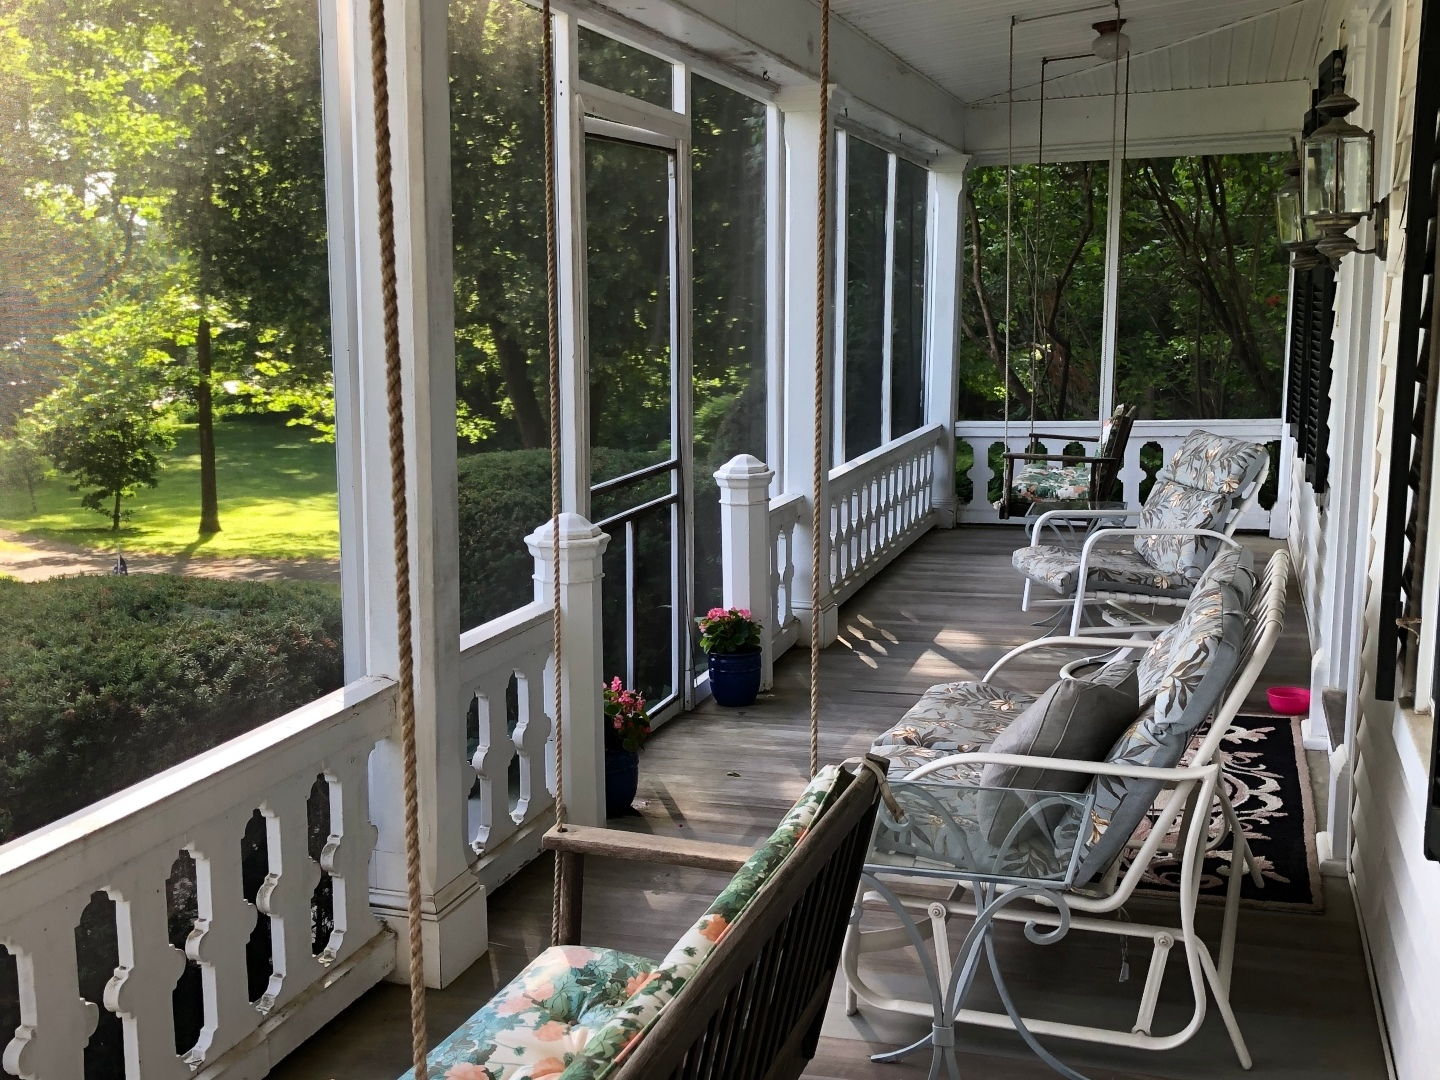 A group of porch at Aiken Manor Bed & Breakfast.